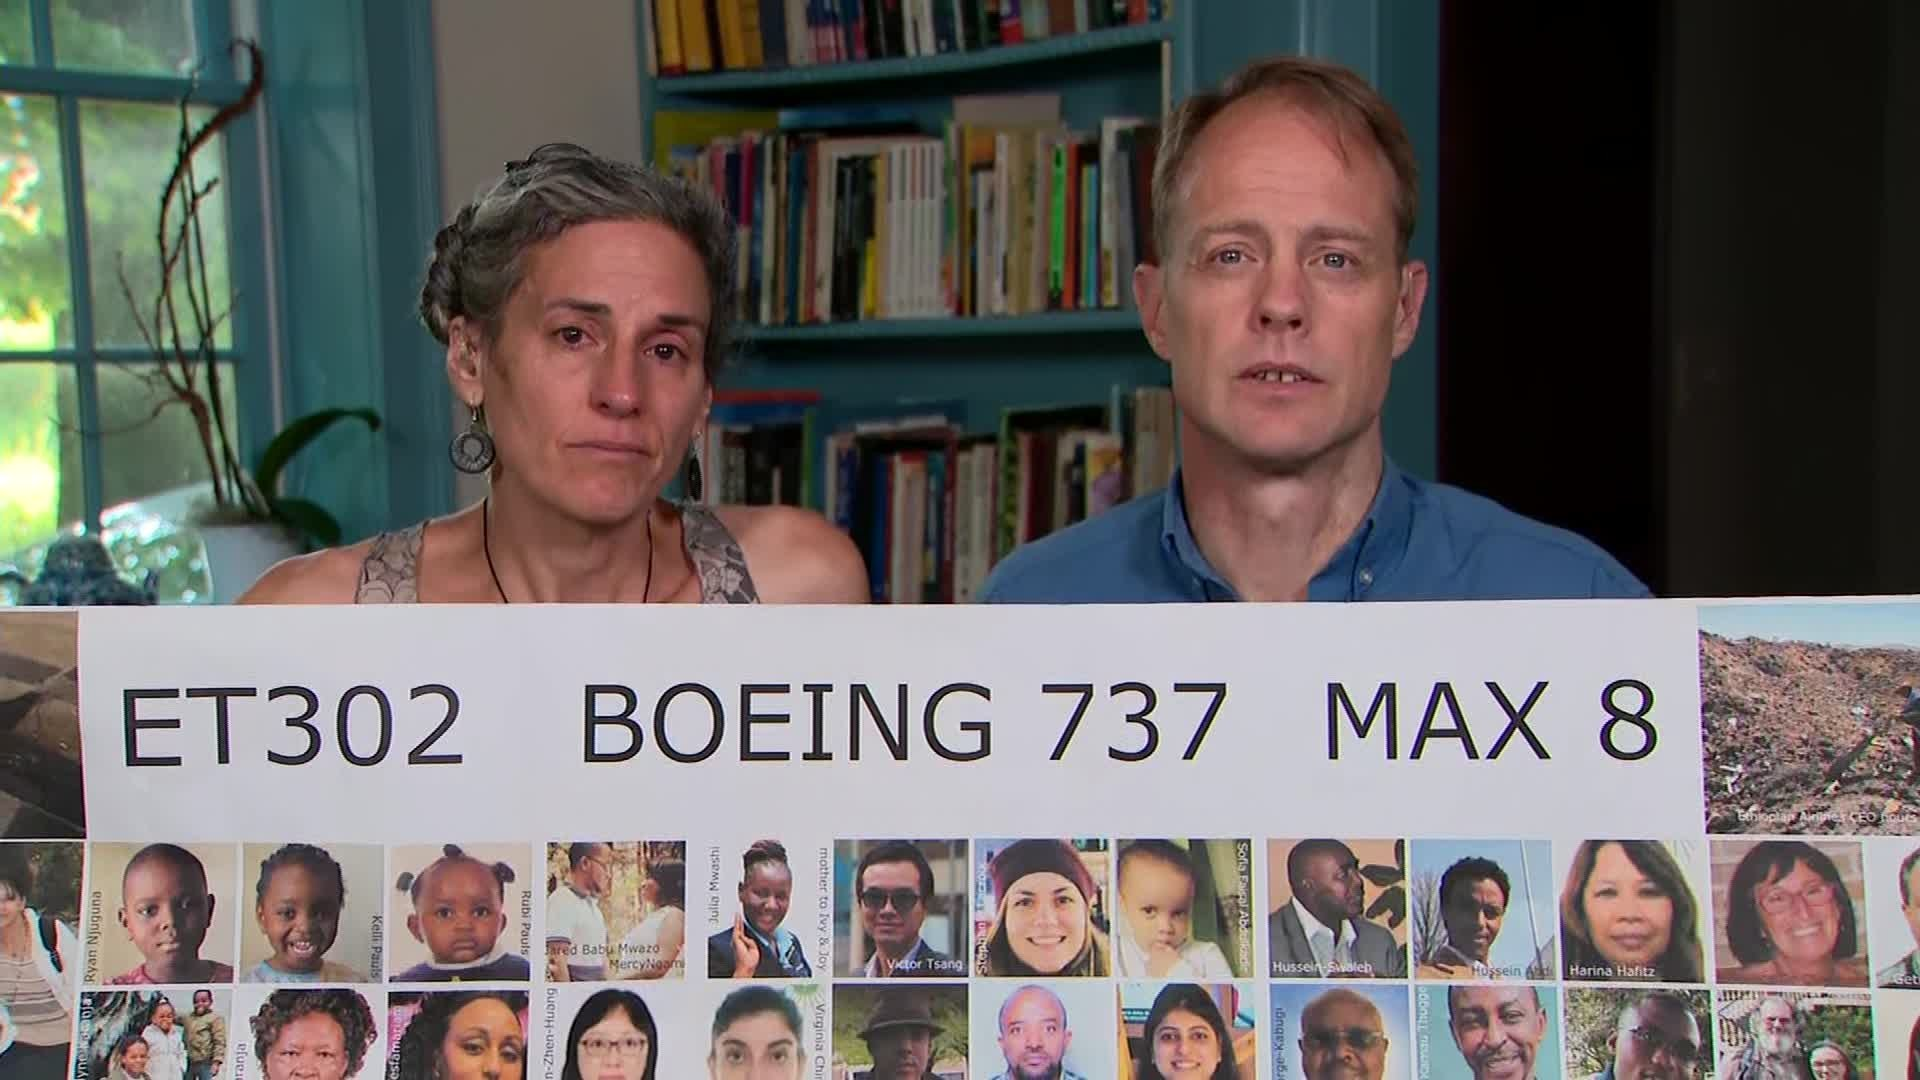 Relatives of victims killed in 737 Max crashes accuse Boeing of prioritizing greed over safety